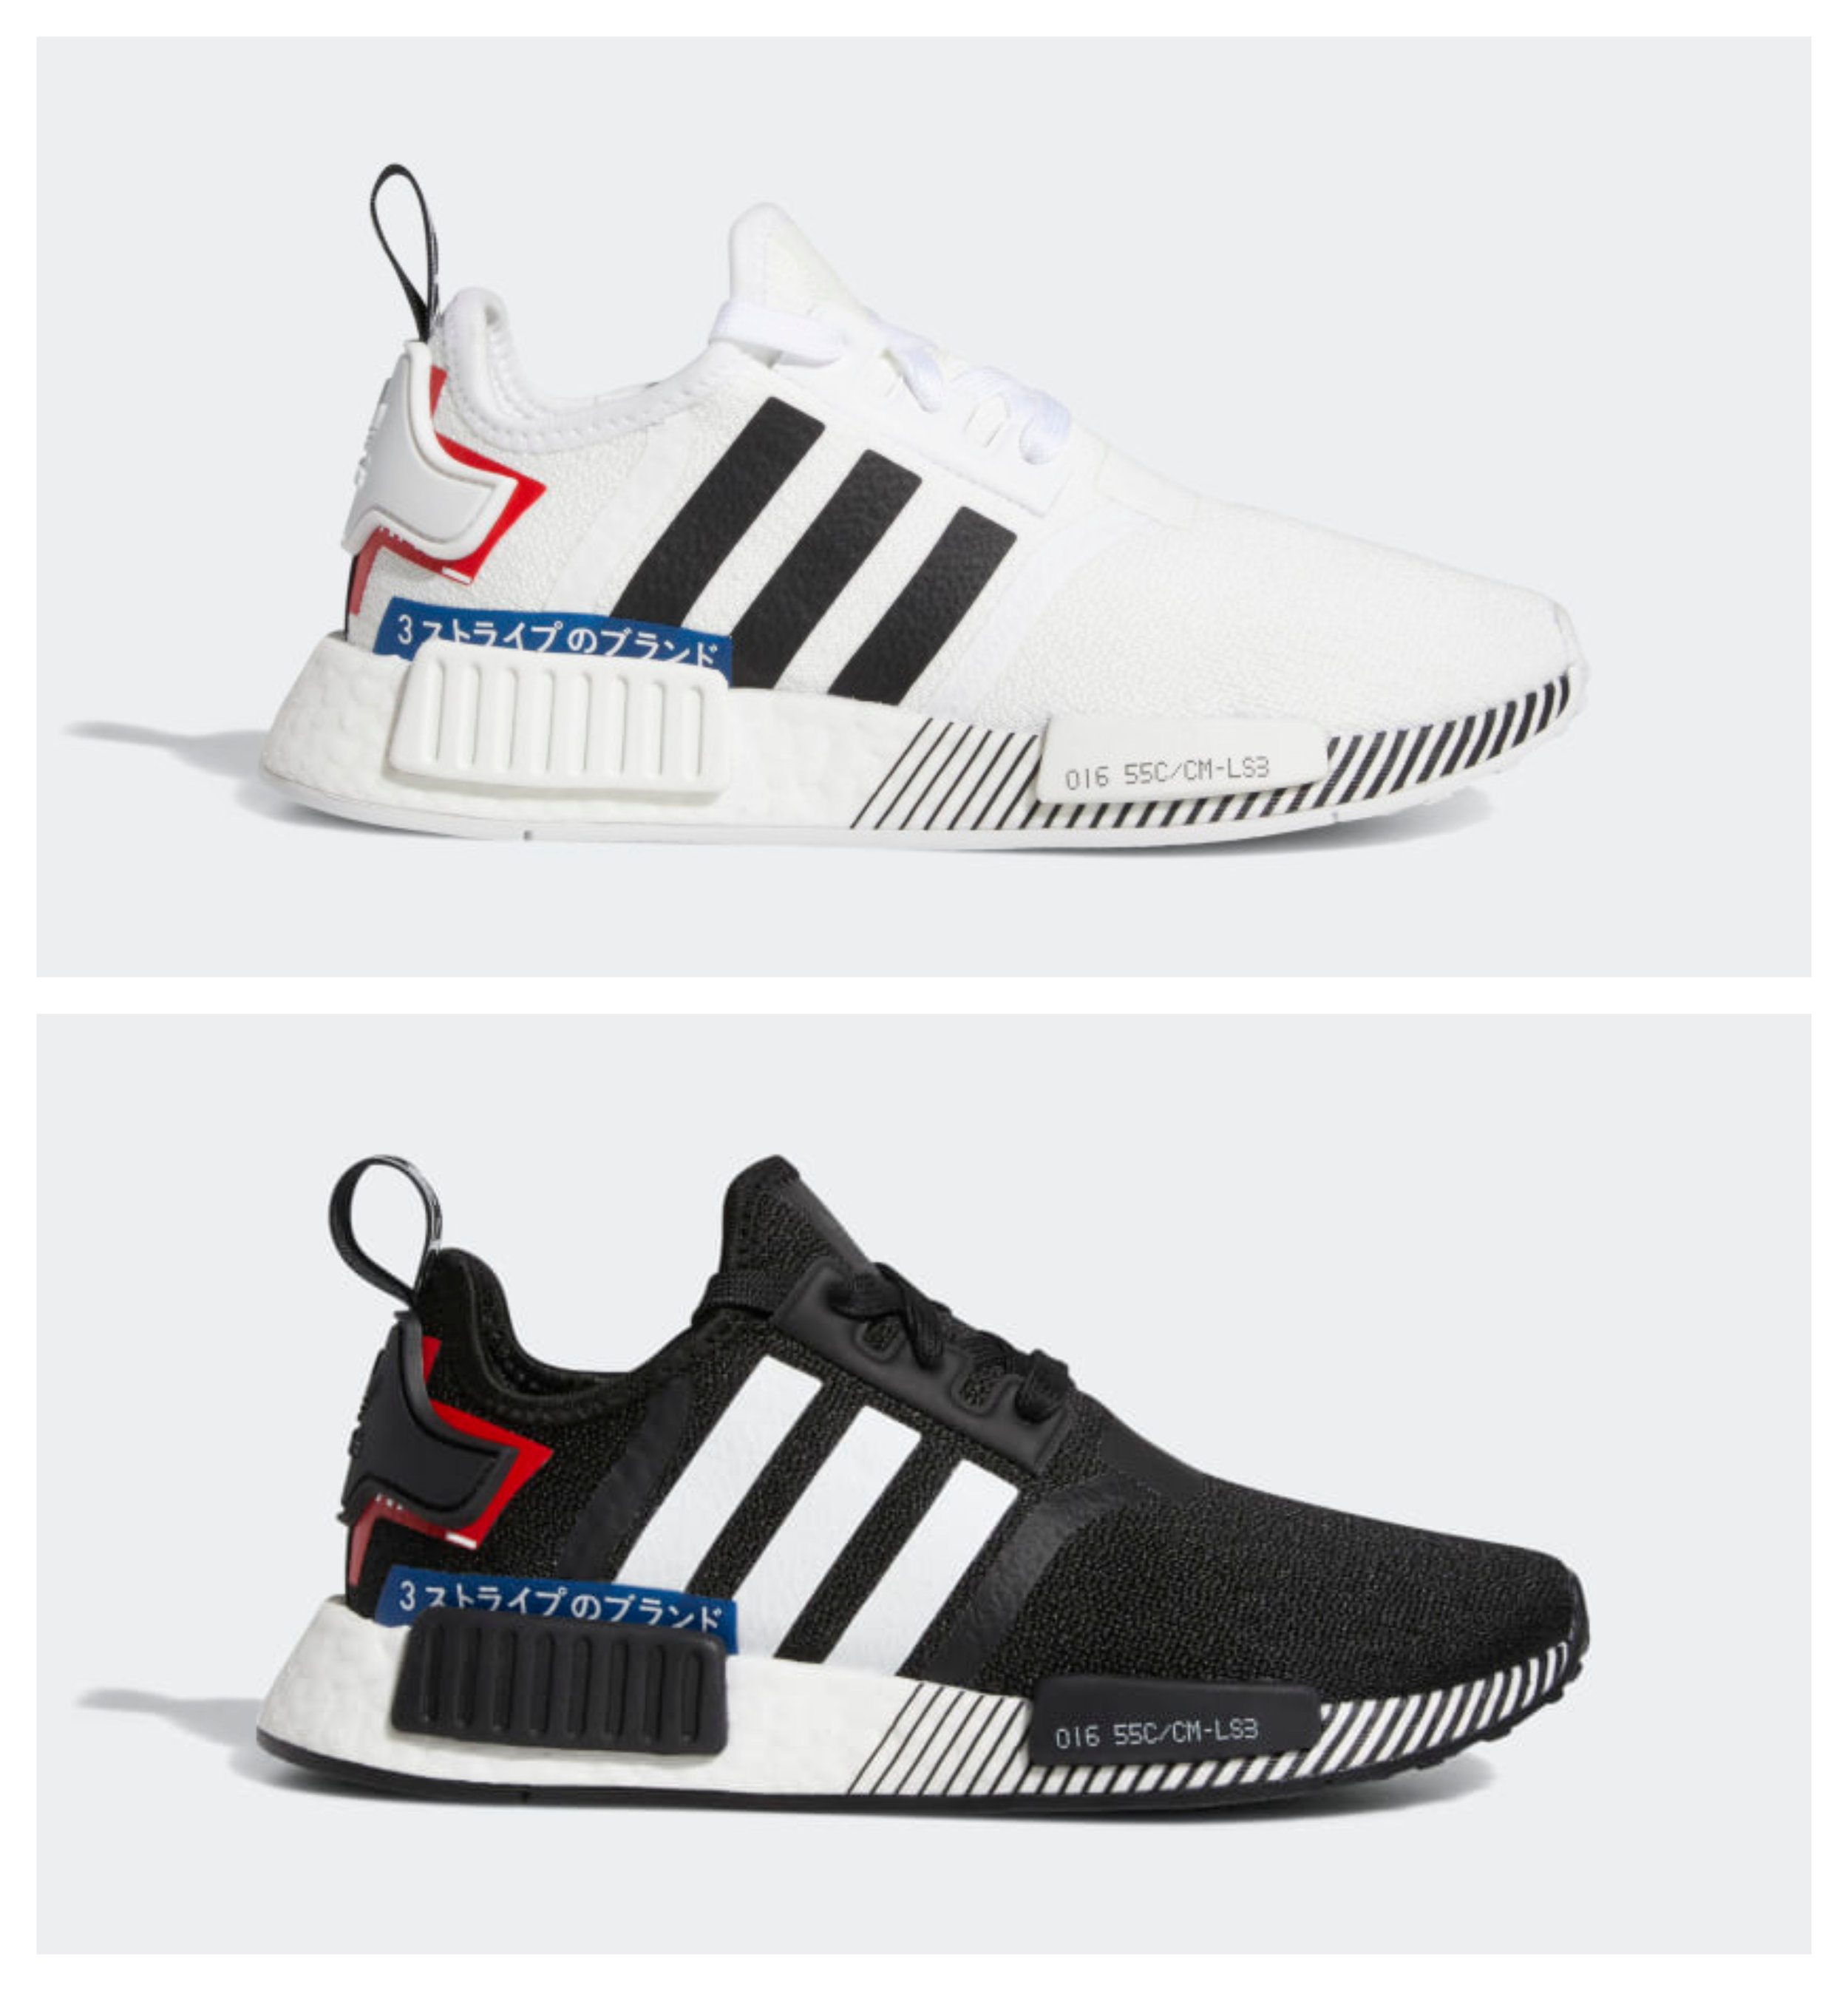 best sneakers 0b896 59c26 KIDS ADIDAS NMD R1 JAPAN PACK SHOES FOR $53.90 — STEALS